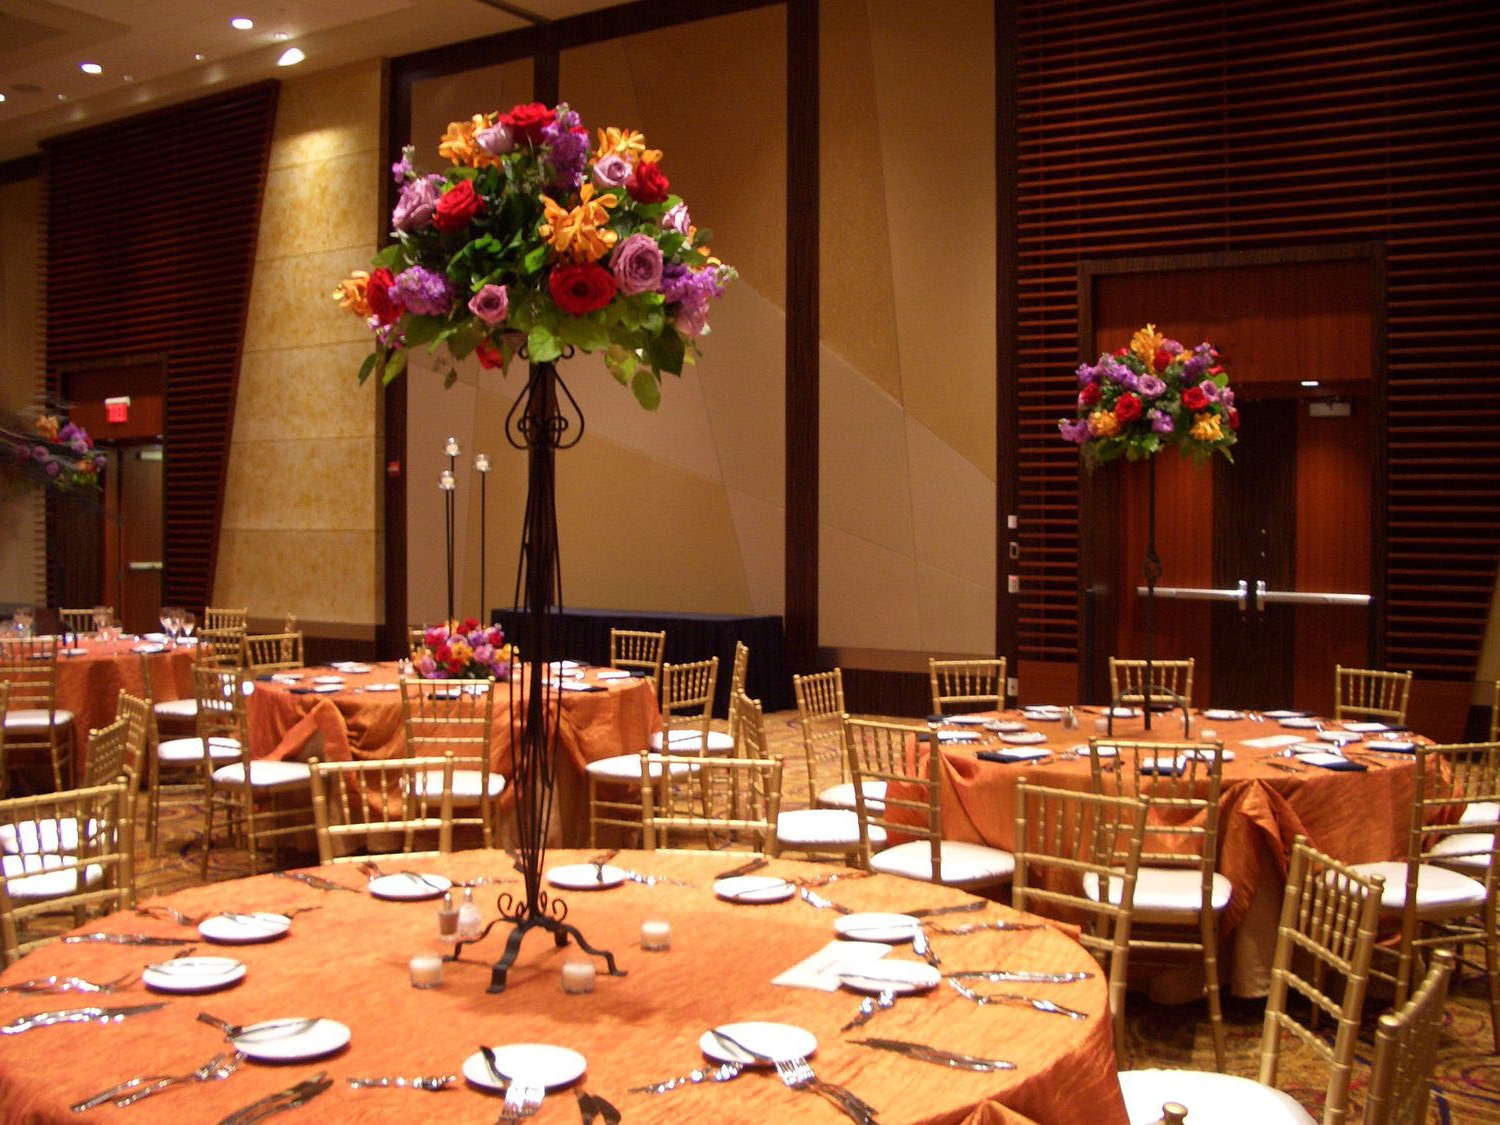 Simple Tall Flower Centerpieces For Wedding Reception (View 25 of 30)